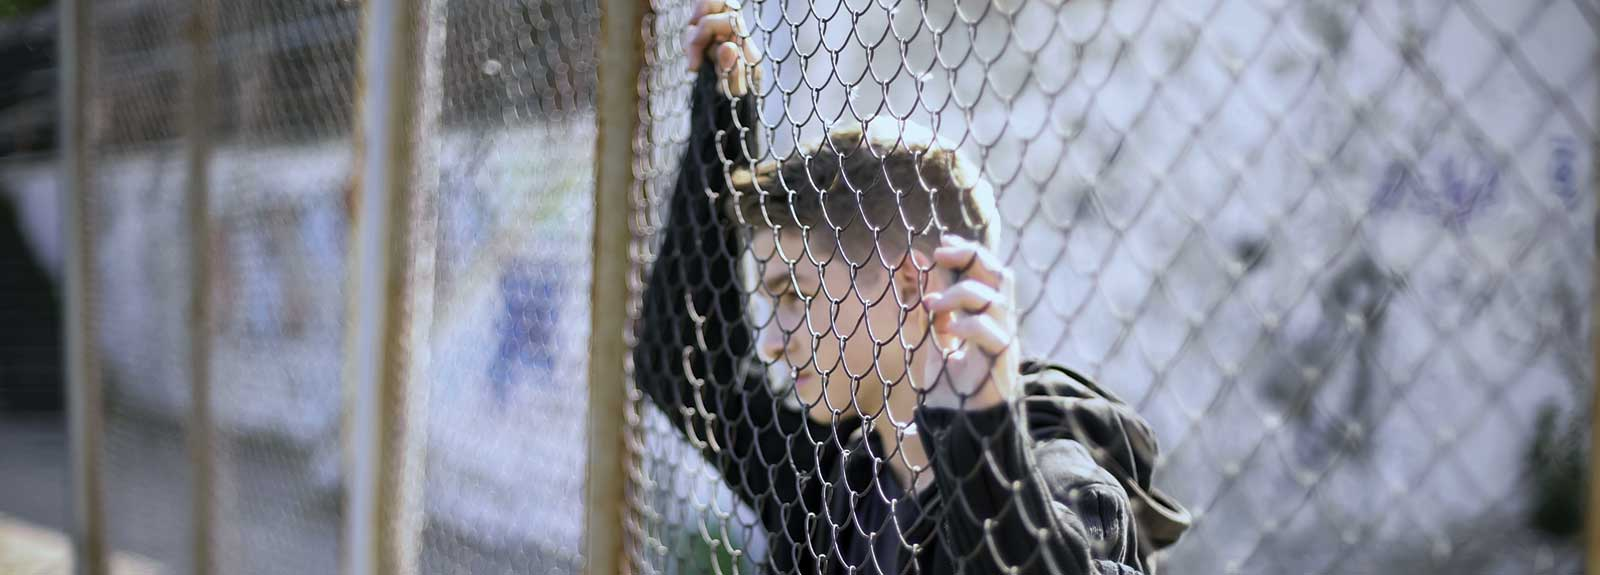 PHOTO: young male behind fence